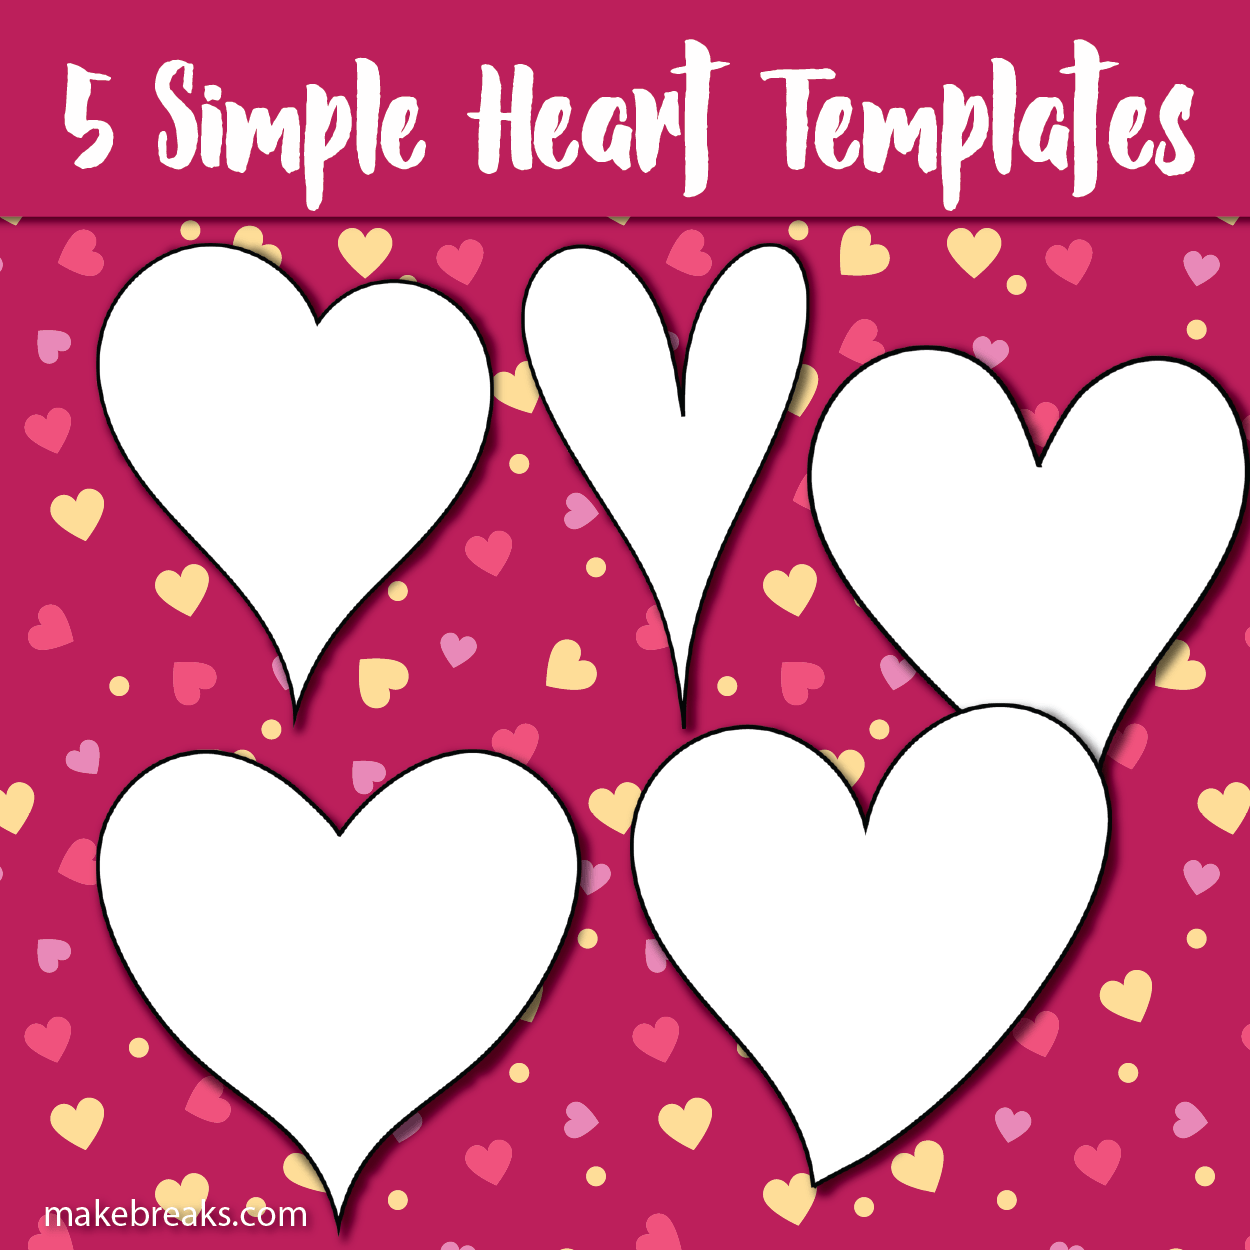 graphic relating to Printable Heart Templates identify 5 Cost-free Printable Middle Templates - Generate Breaks